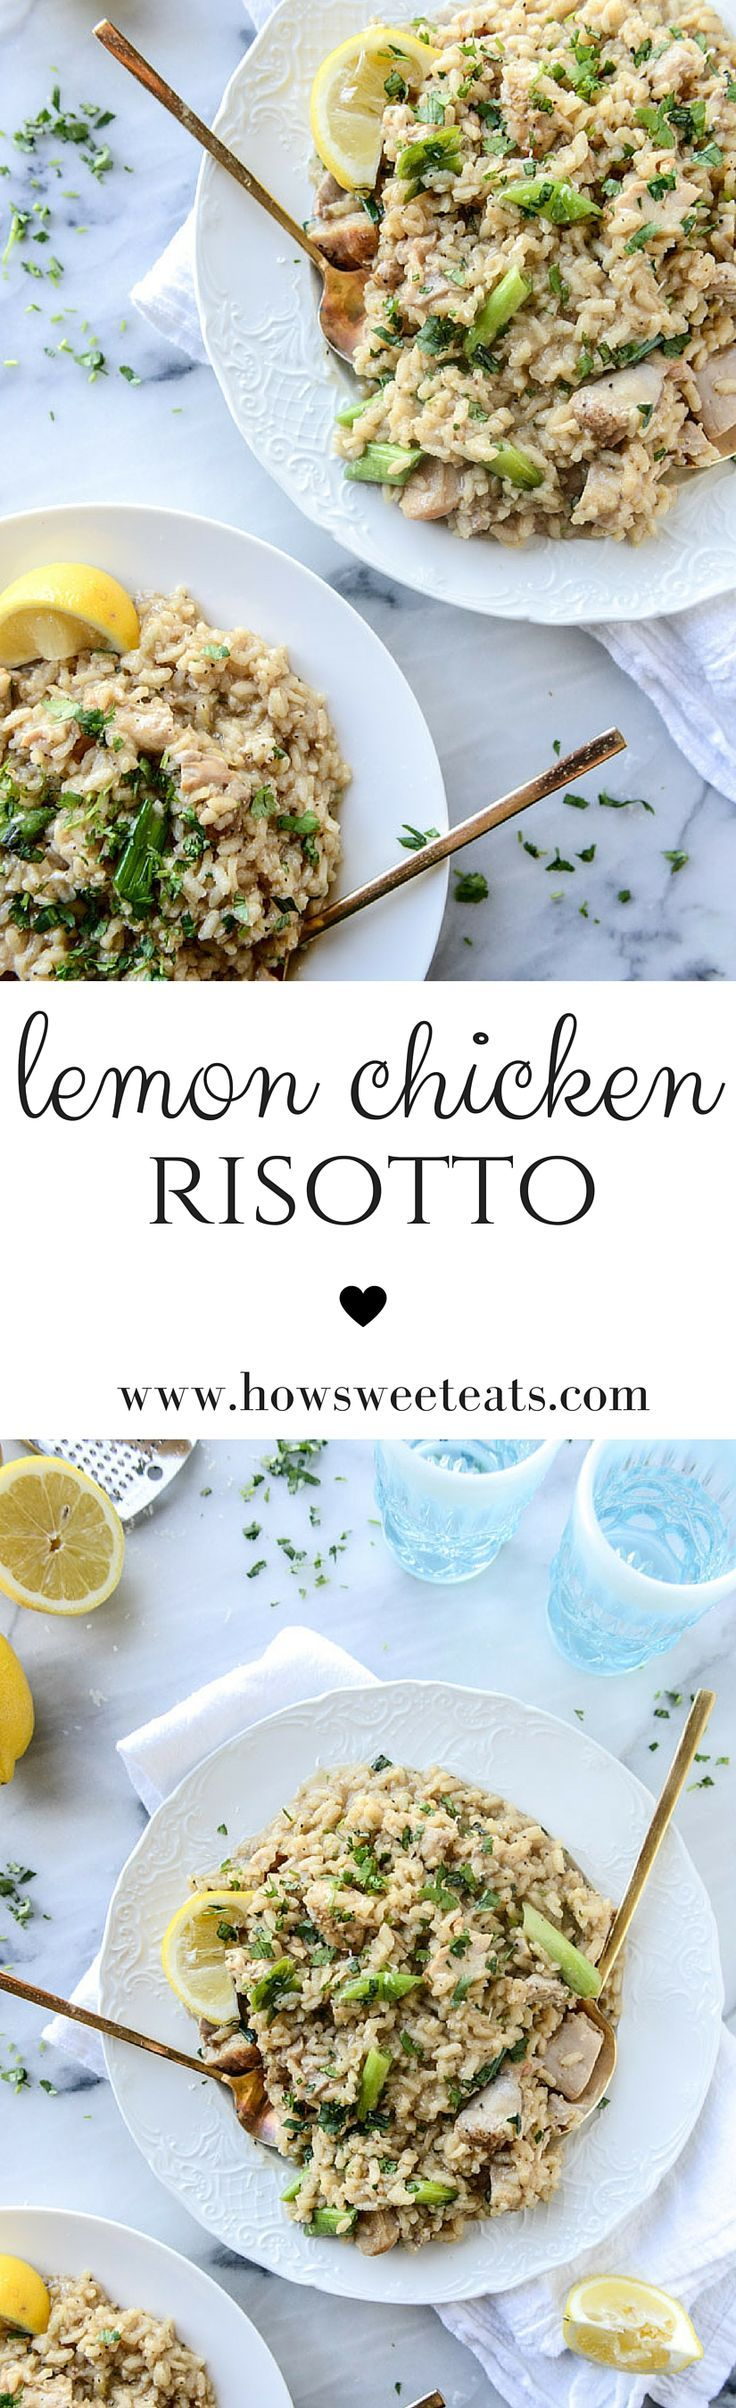 lemon chicken risotto by /howsweeteats/ I http://howsweeteats.com